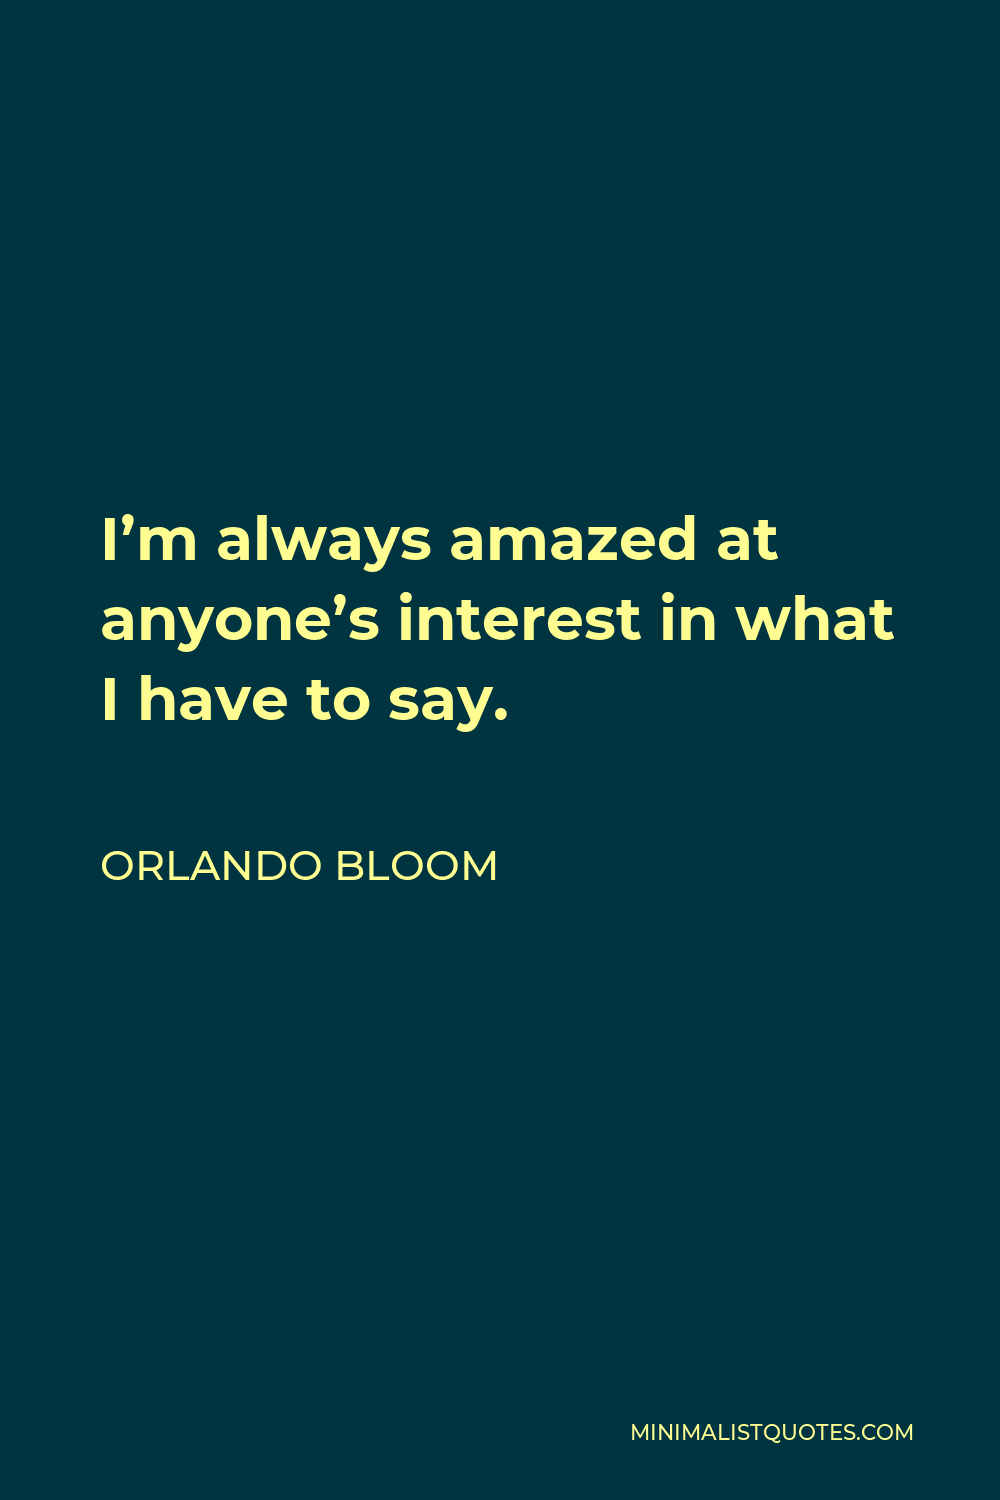 Orlando Bloom Quote - I'm always amazed at anyone's interest in what I have to say.